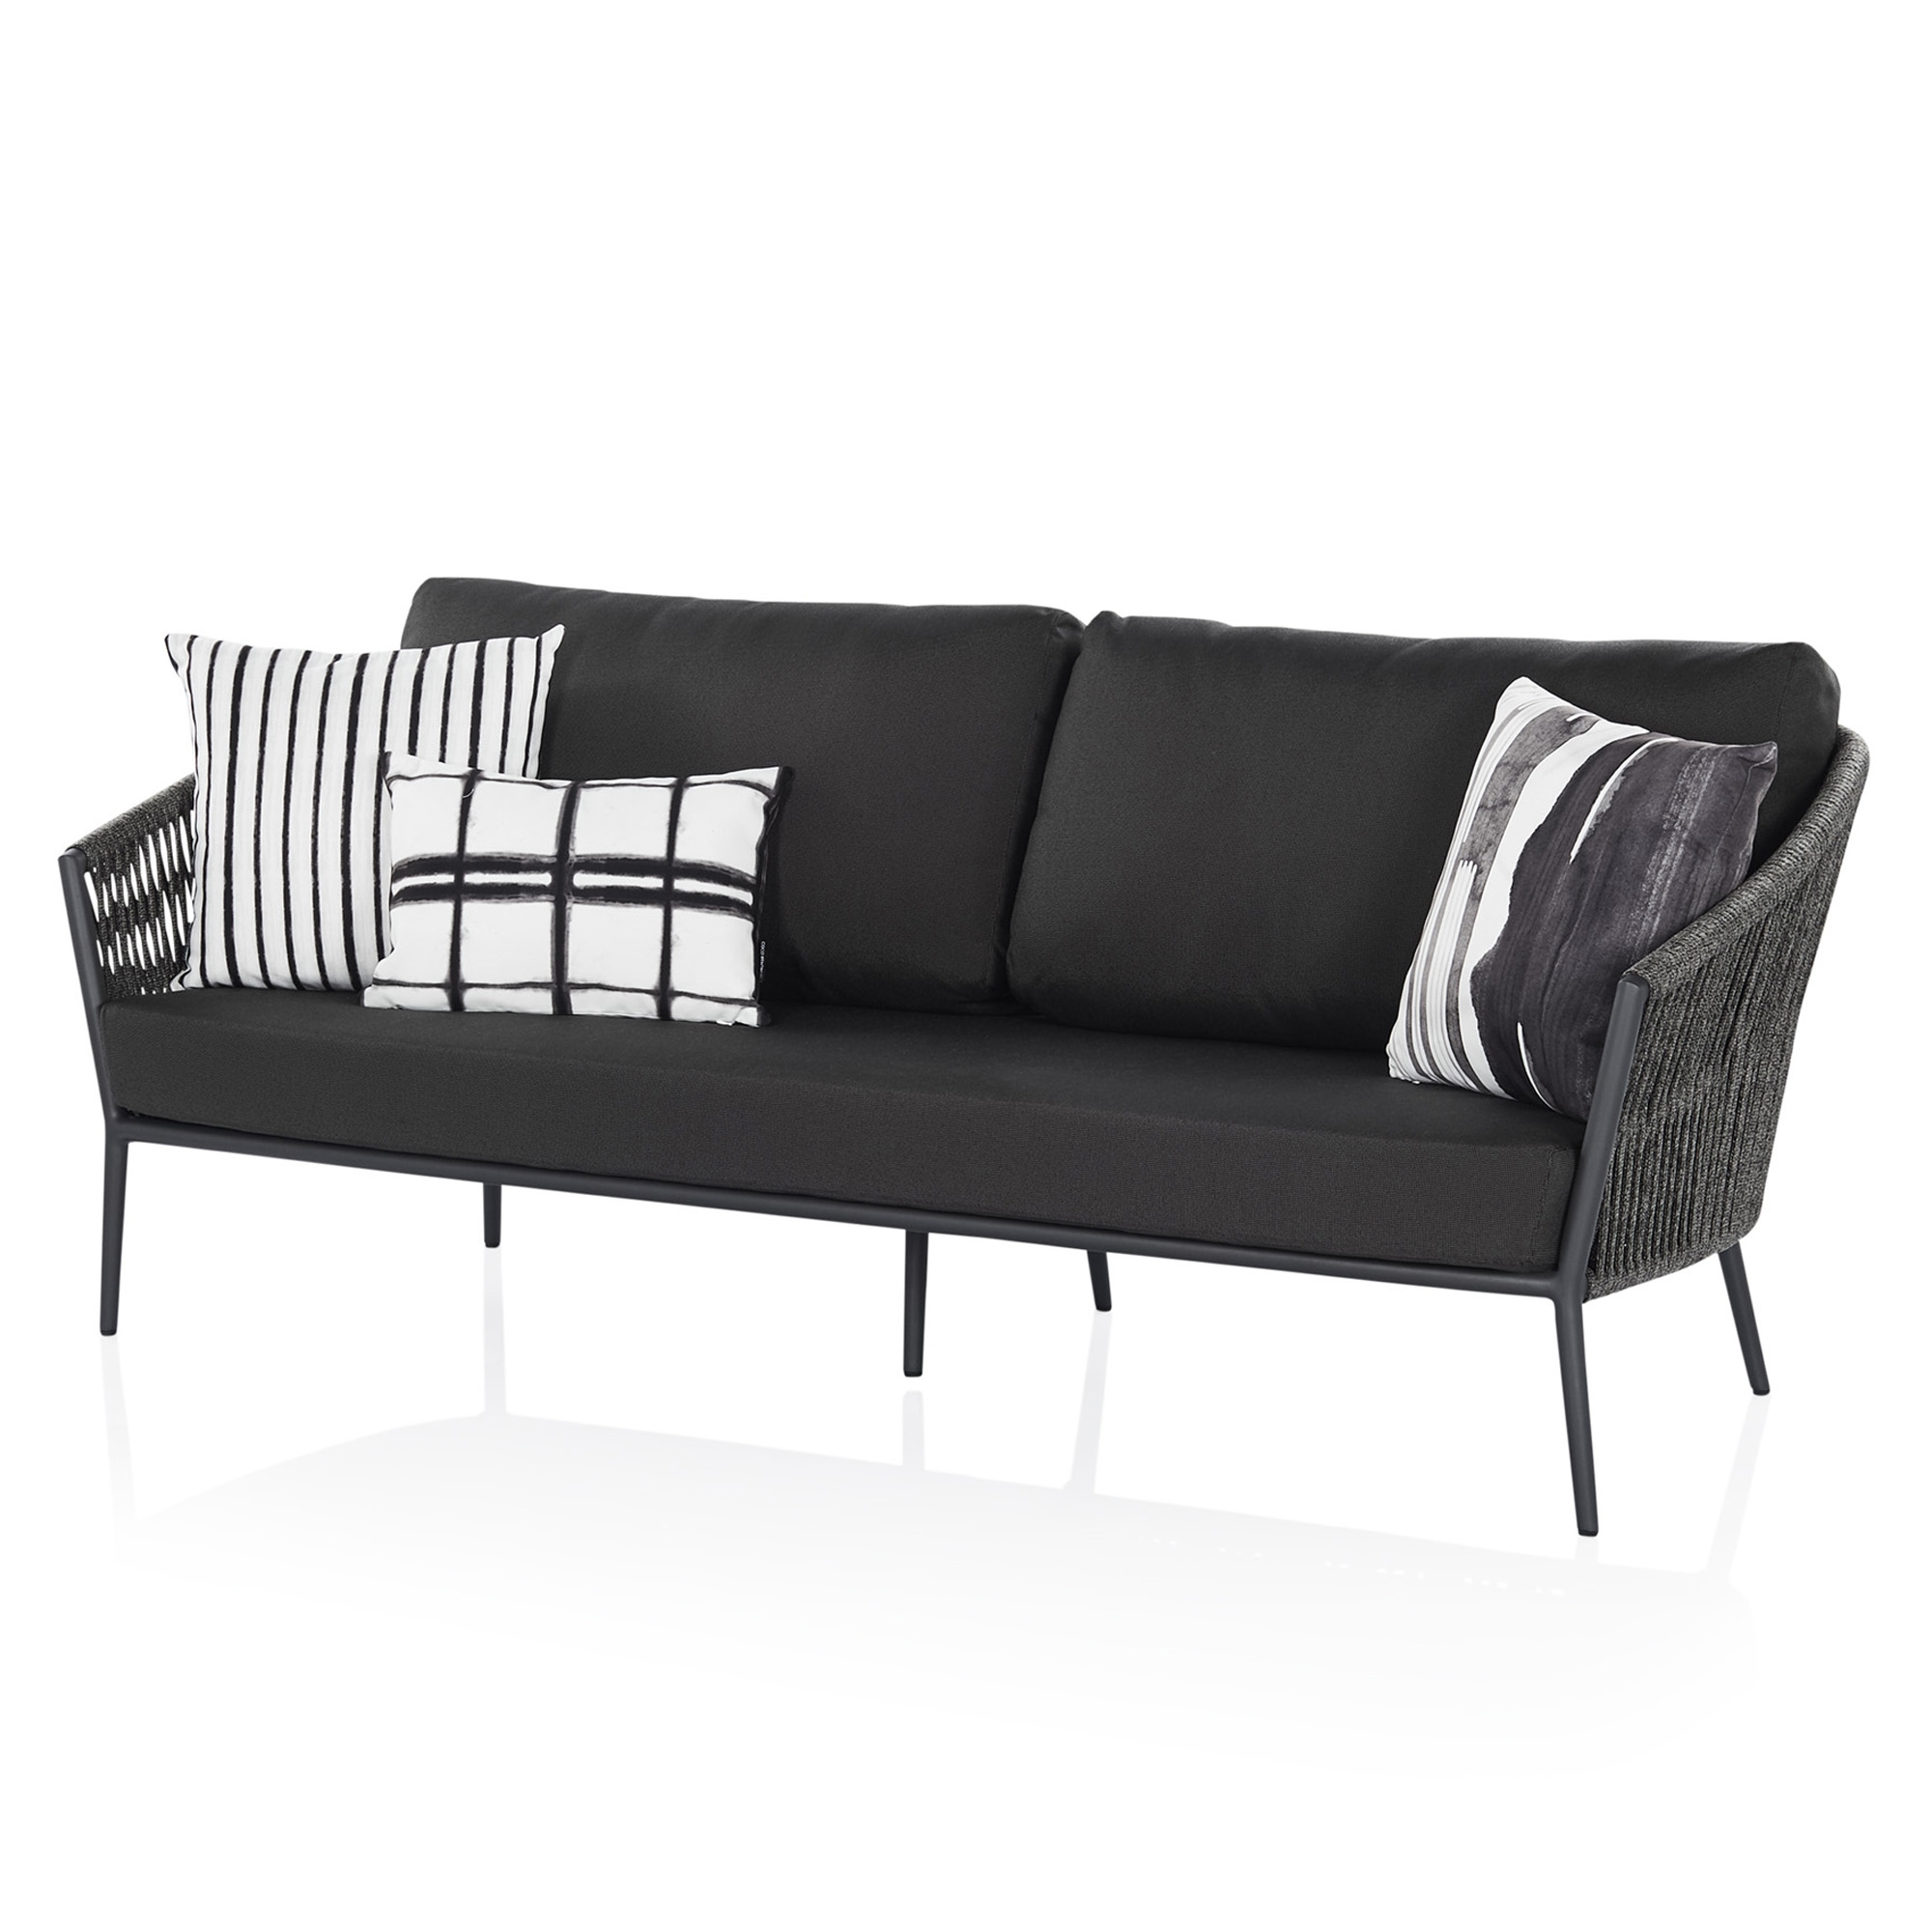 Catalina Outdoor Sofas With Cushions Throughout Famous Catalina Outdoor Sofa (View 3 of 11)